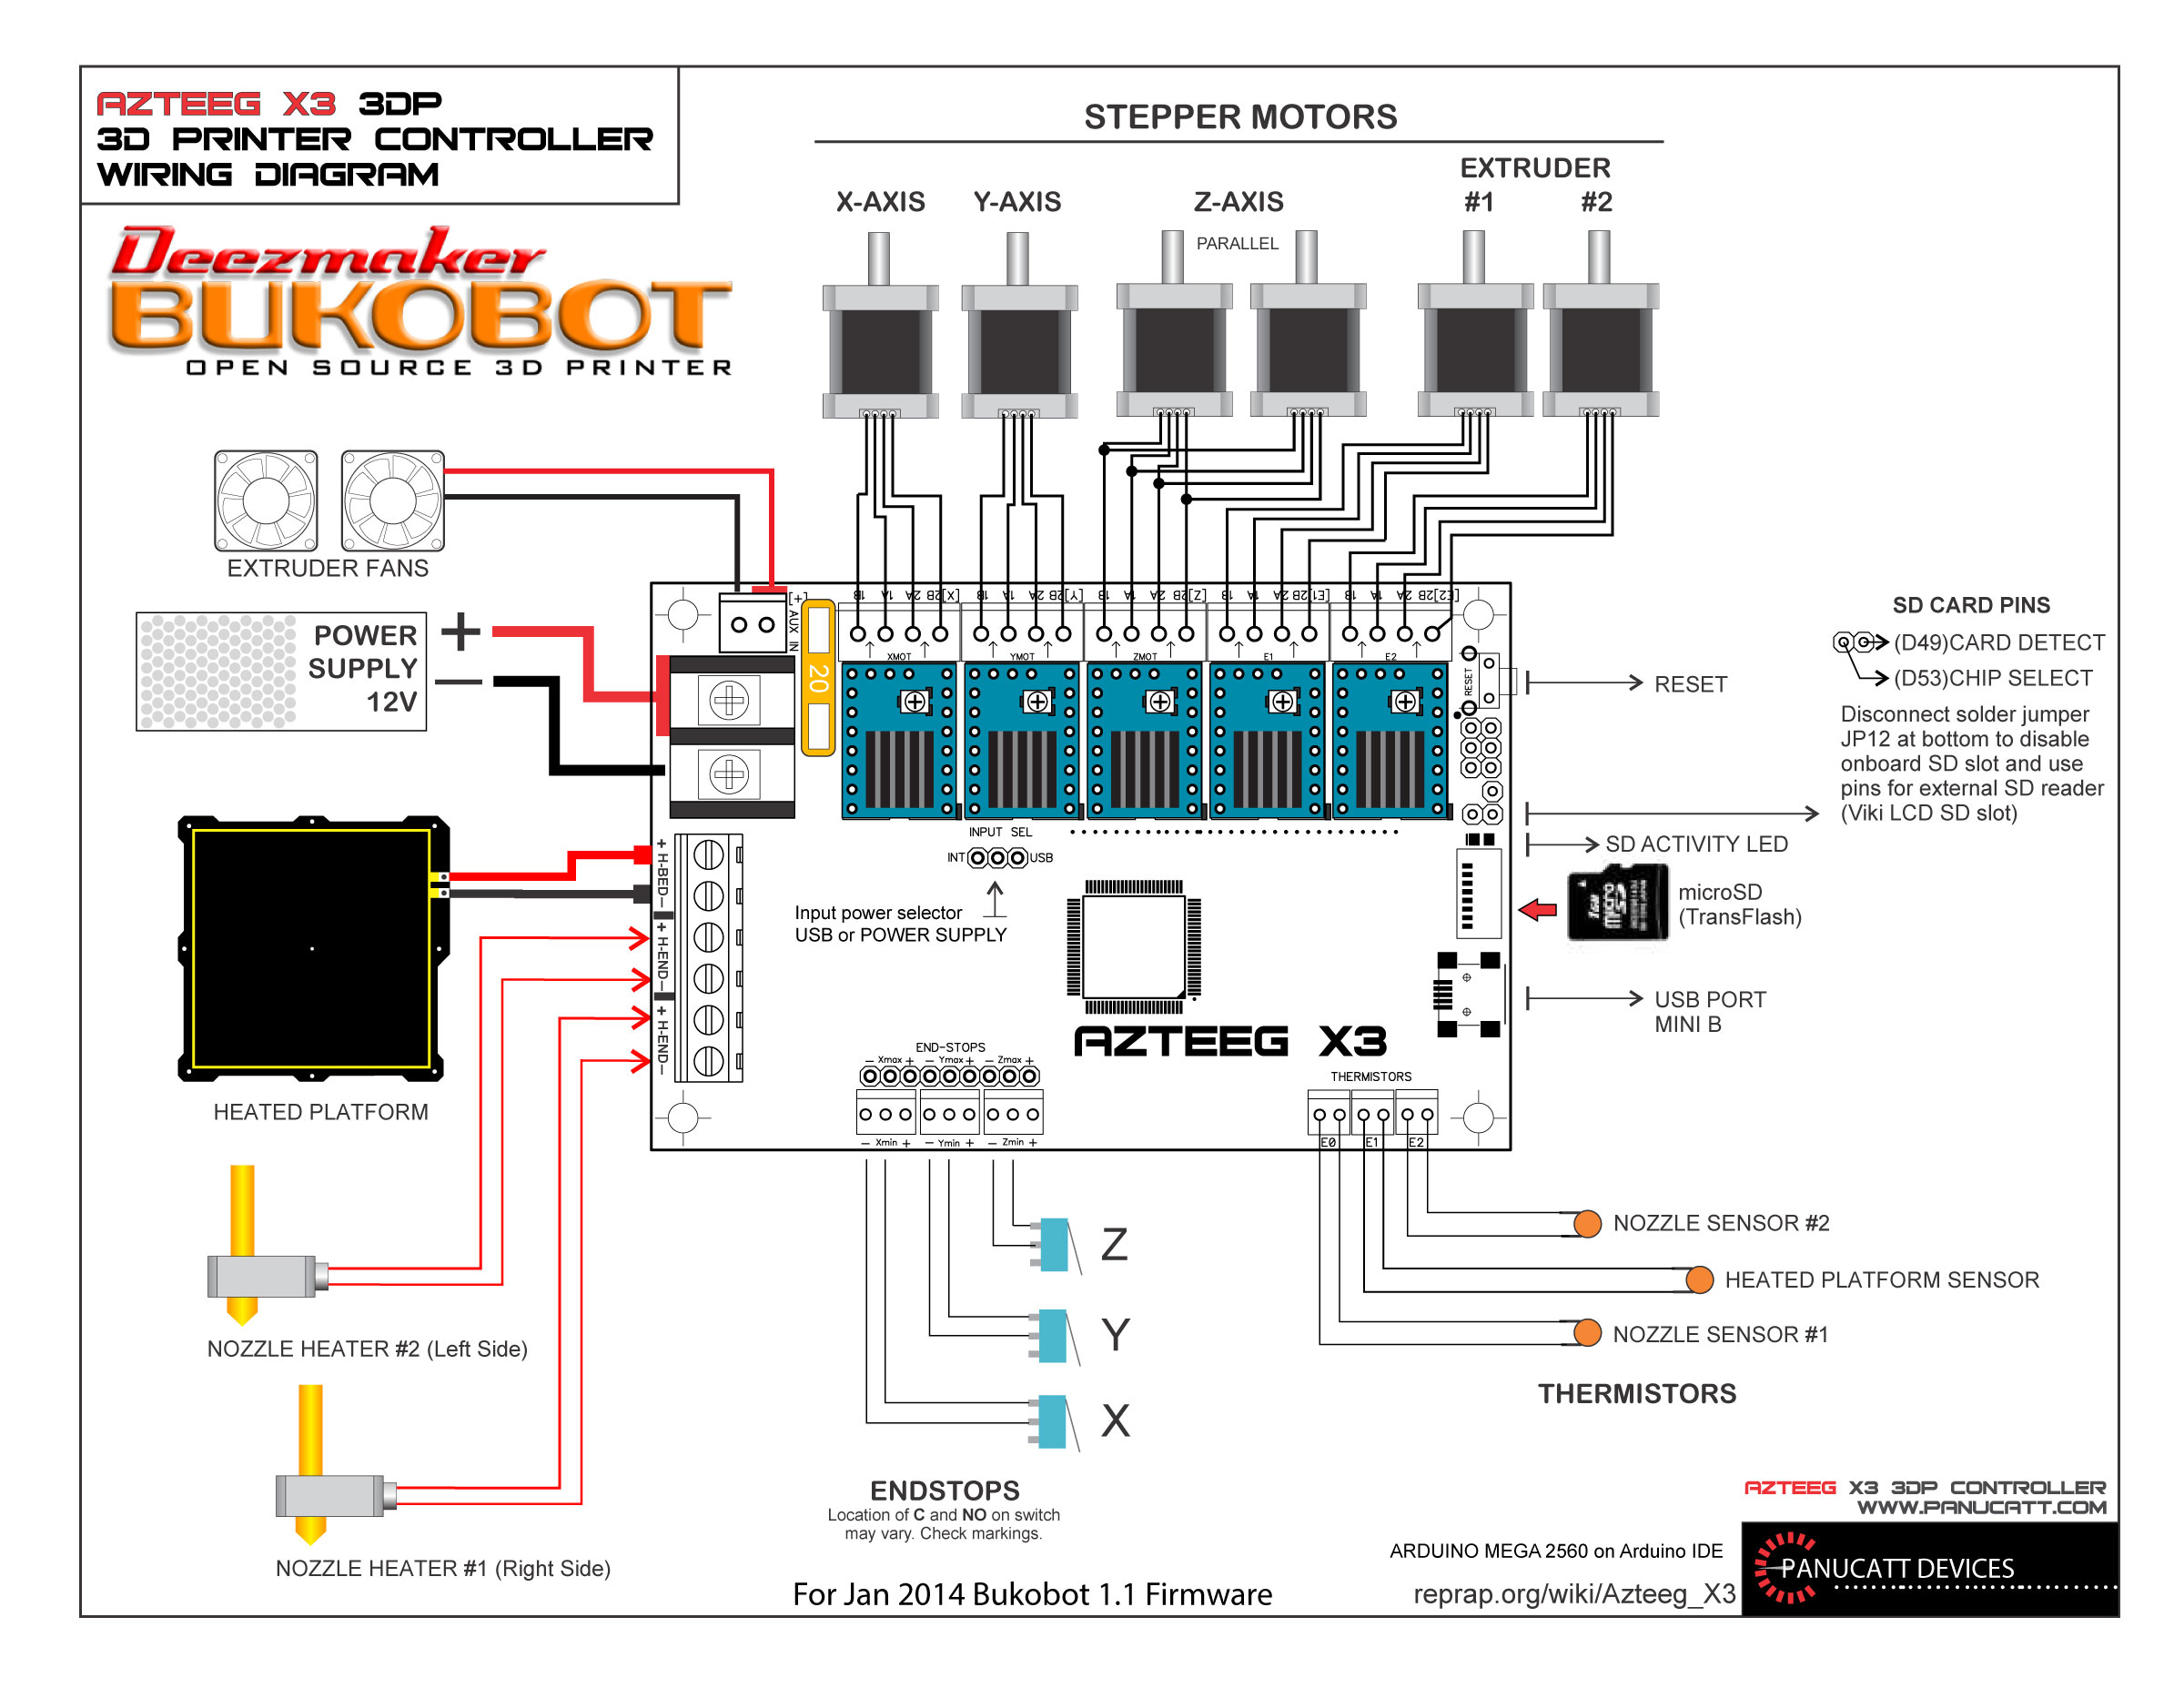 bukobotv2 x3 v1.1 wiring for bukobot 01 2014 bukobot v2 electronics [bukobot 3d printer instructions & docs] 3d printer wiring diagram at virtualis.co